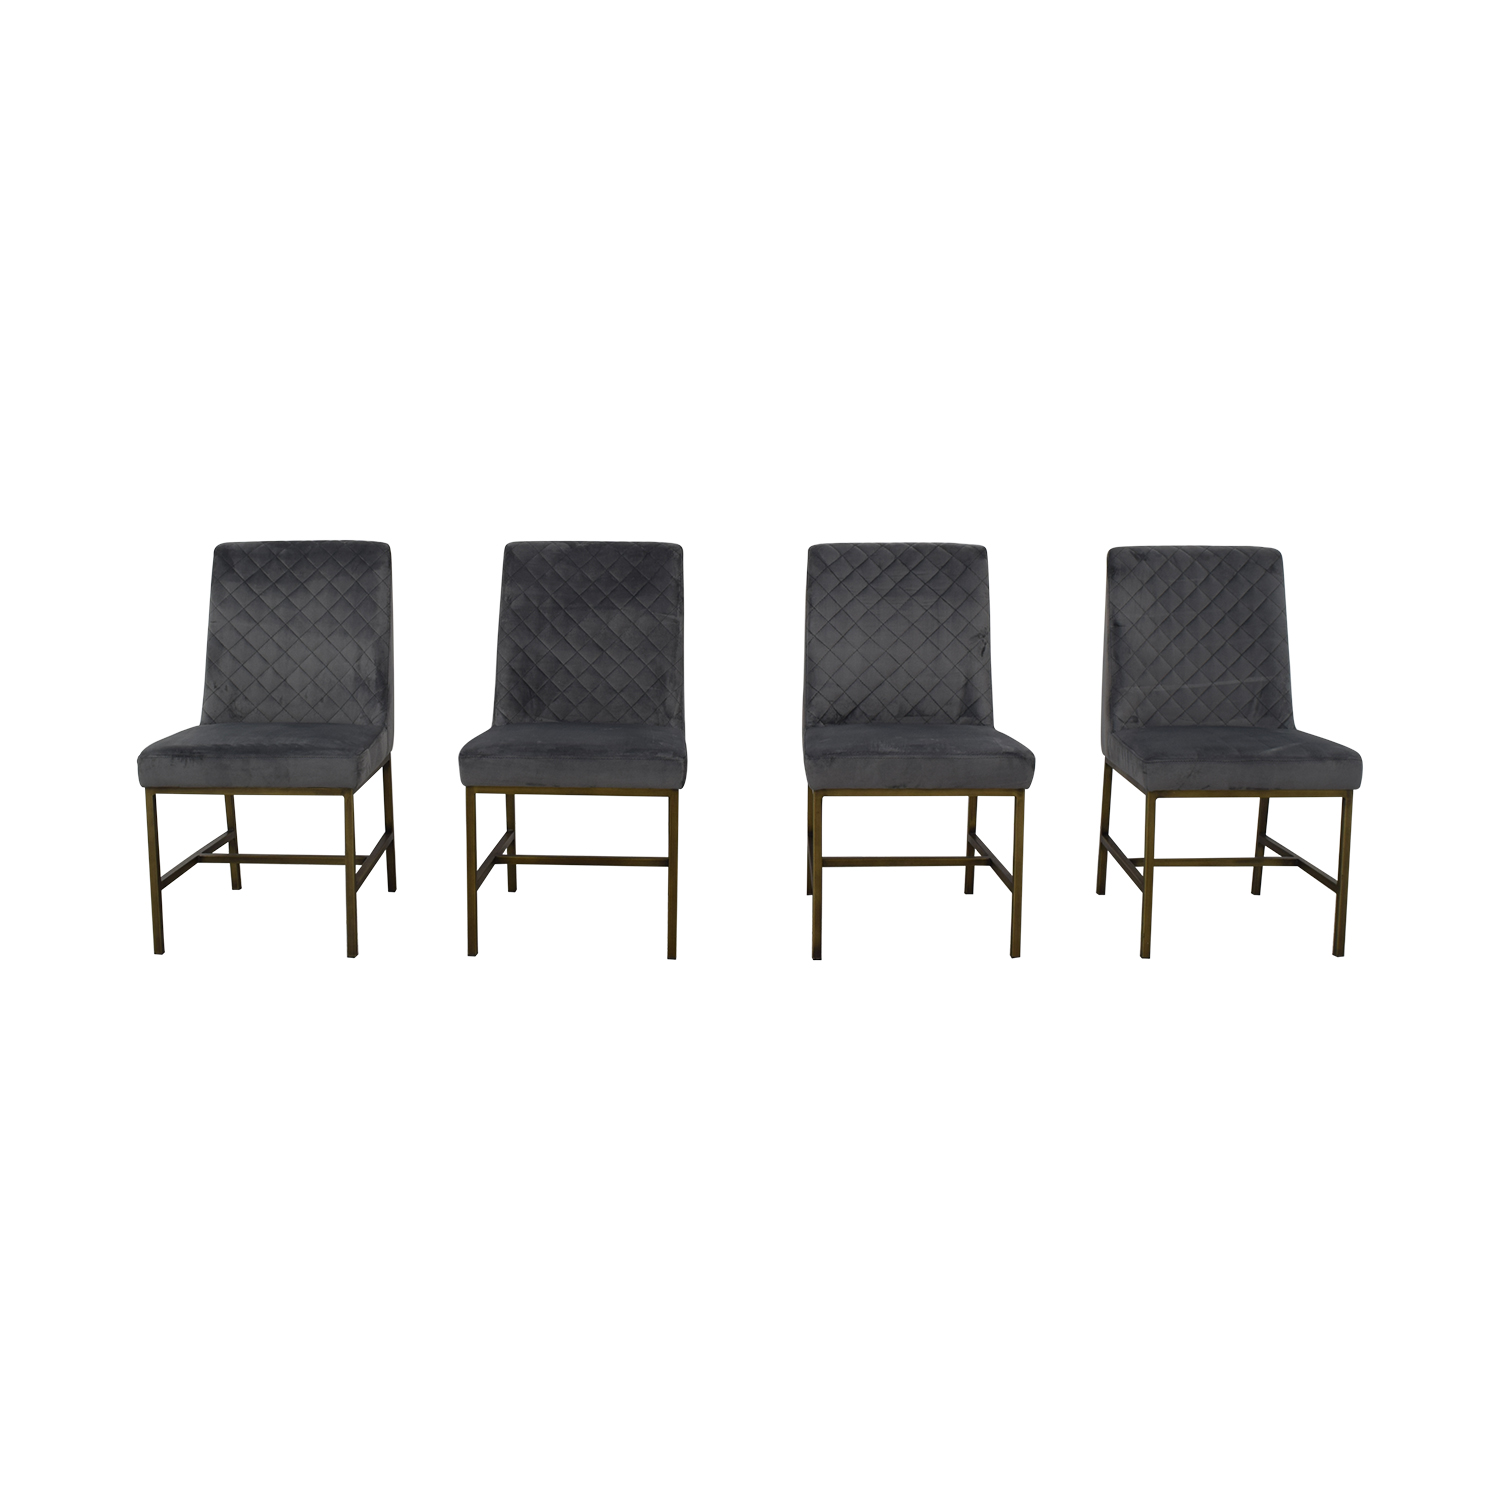 Macy's Cambridge Dining Chairs sale